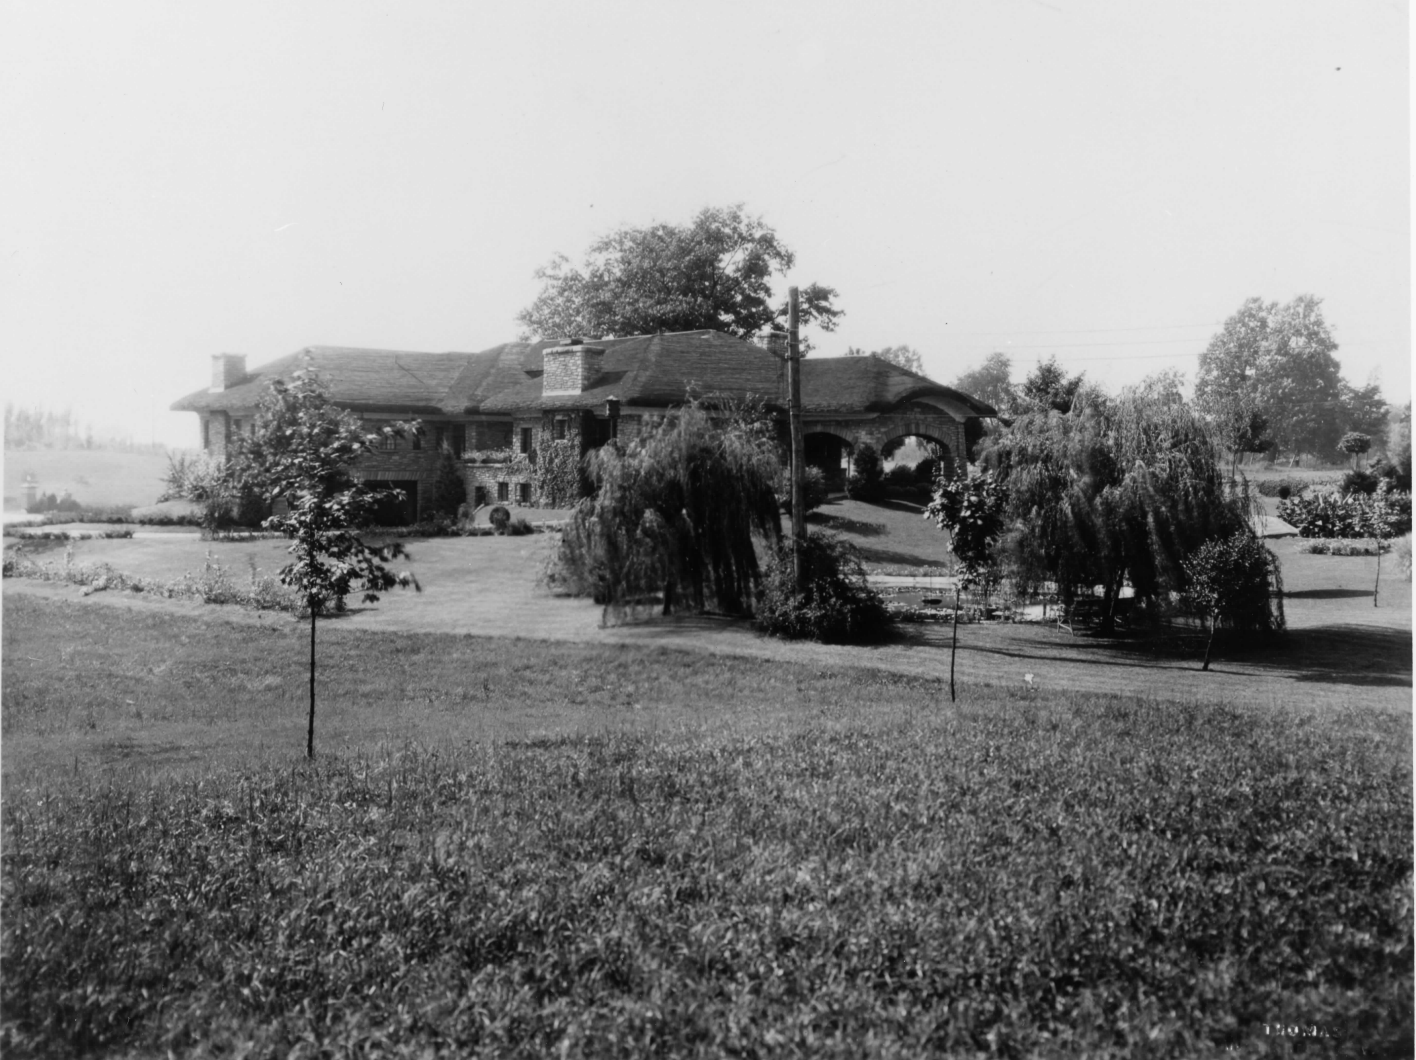 Northwest view of the house in 1925